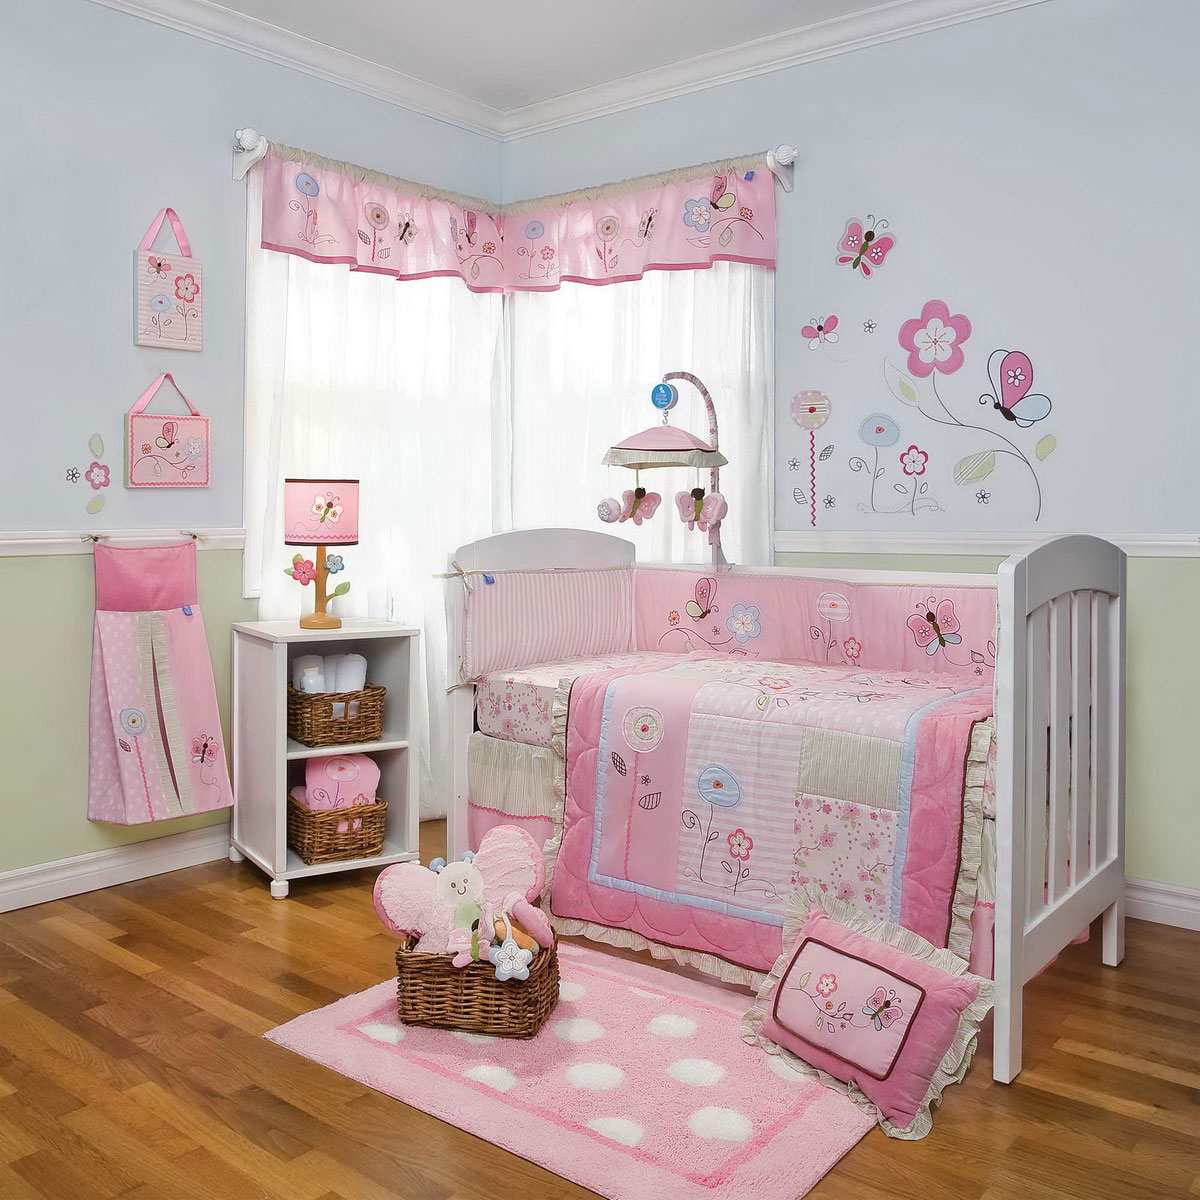 Baby girl bedroom decor. Baby girl themes for bedroom   large and beautiful photos  Photo